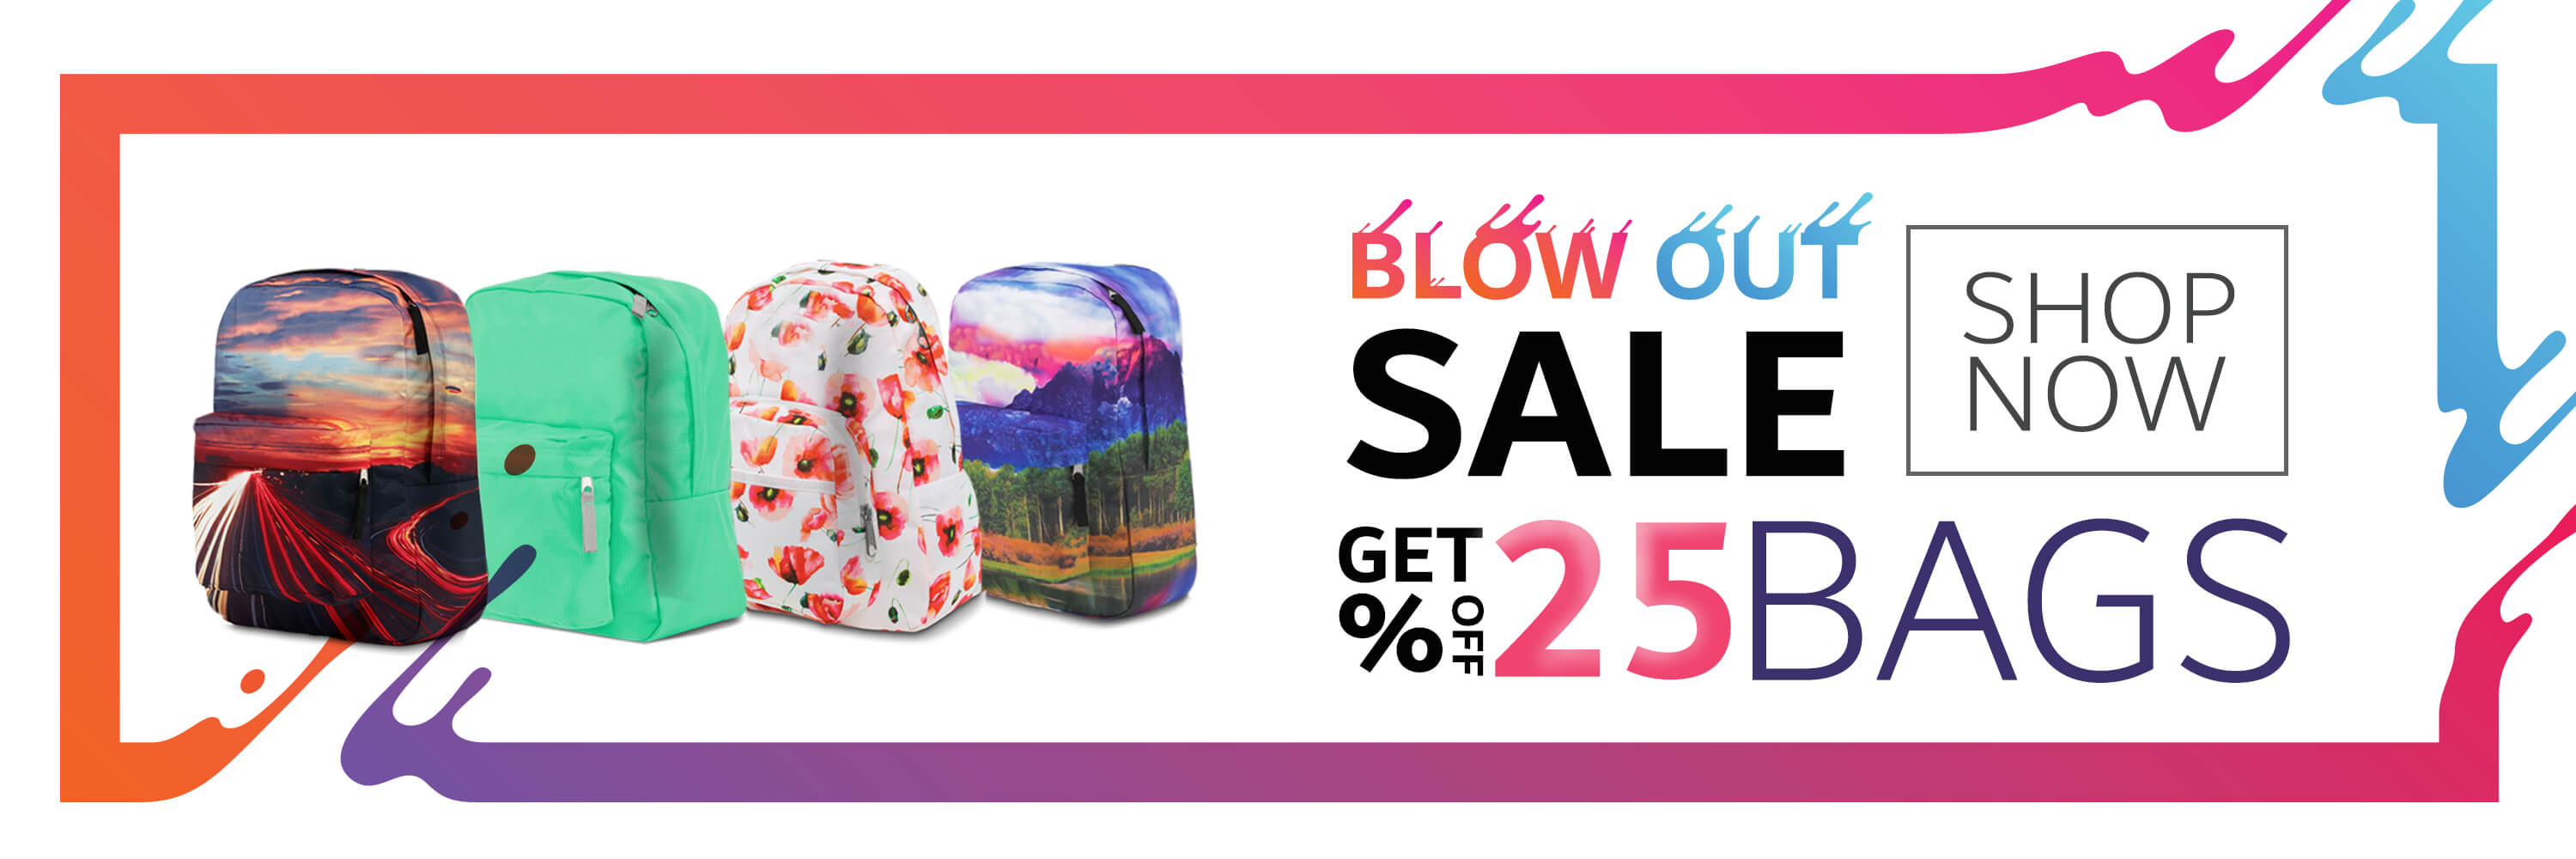 Blowout Bag Sale